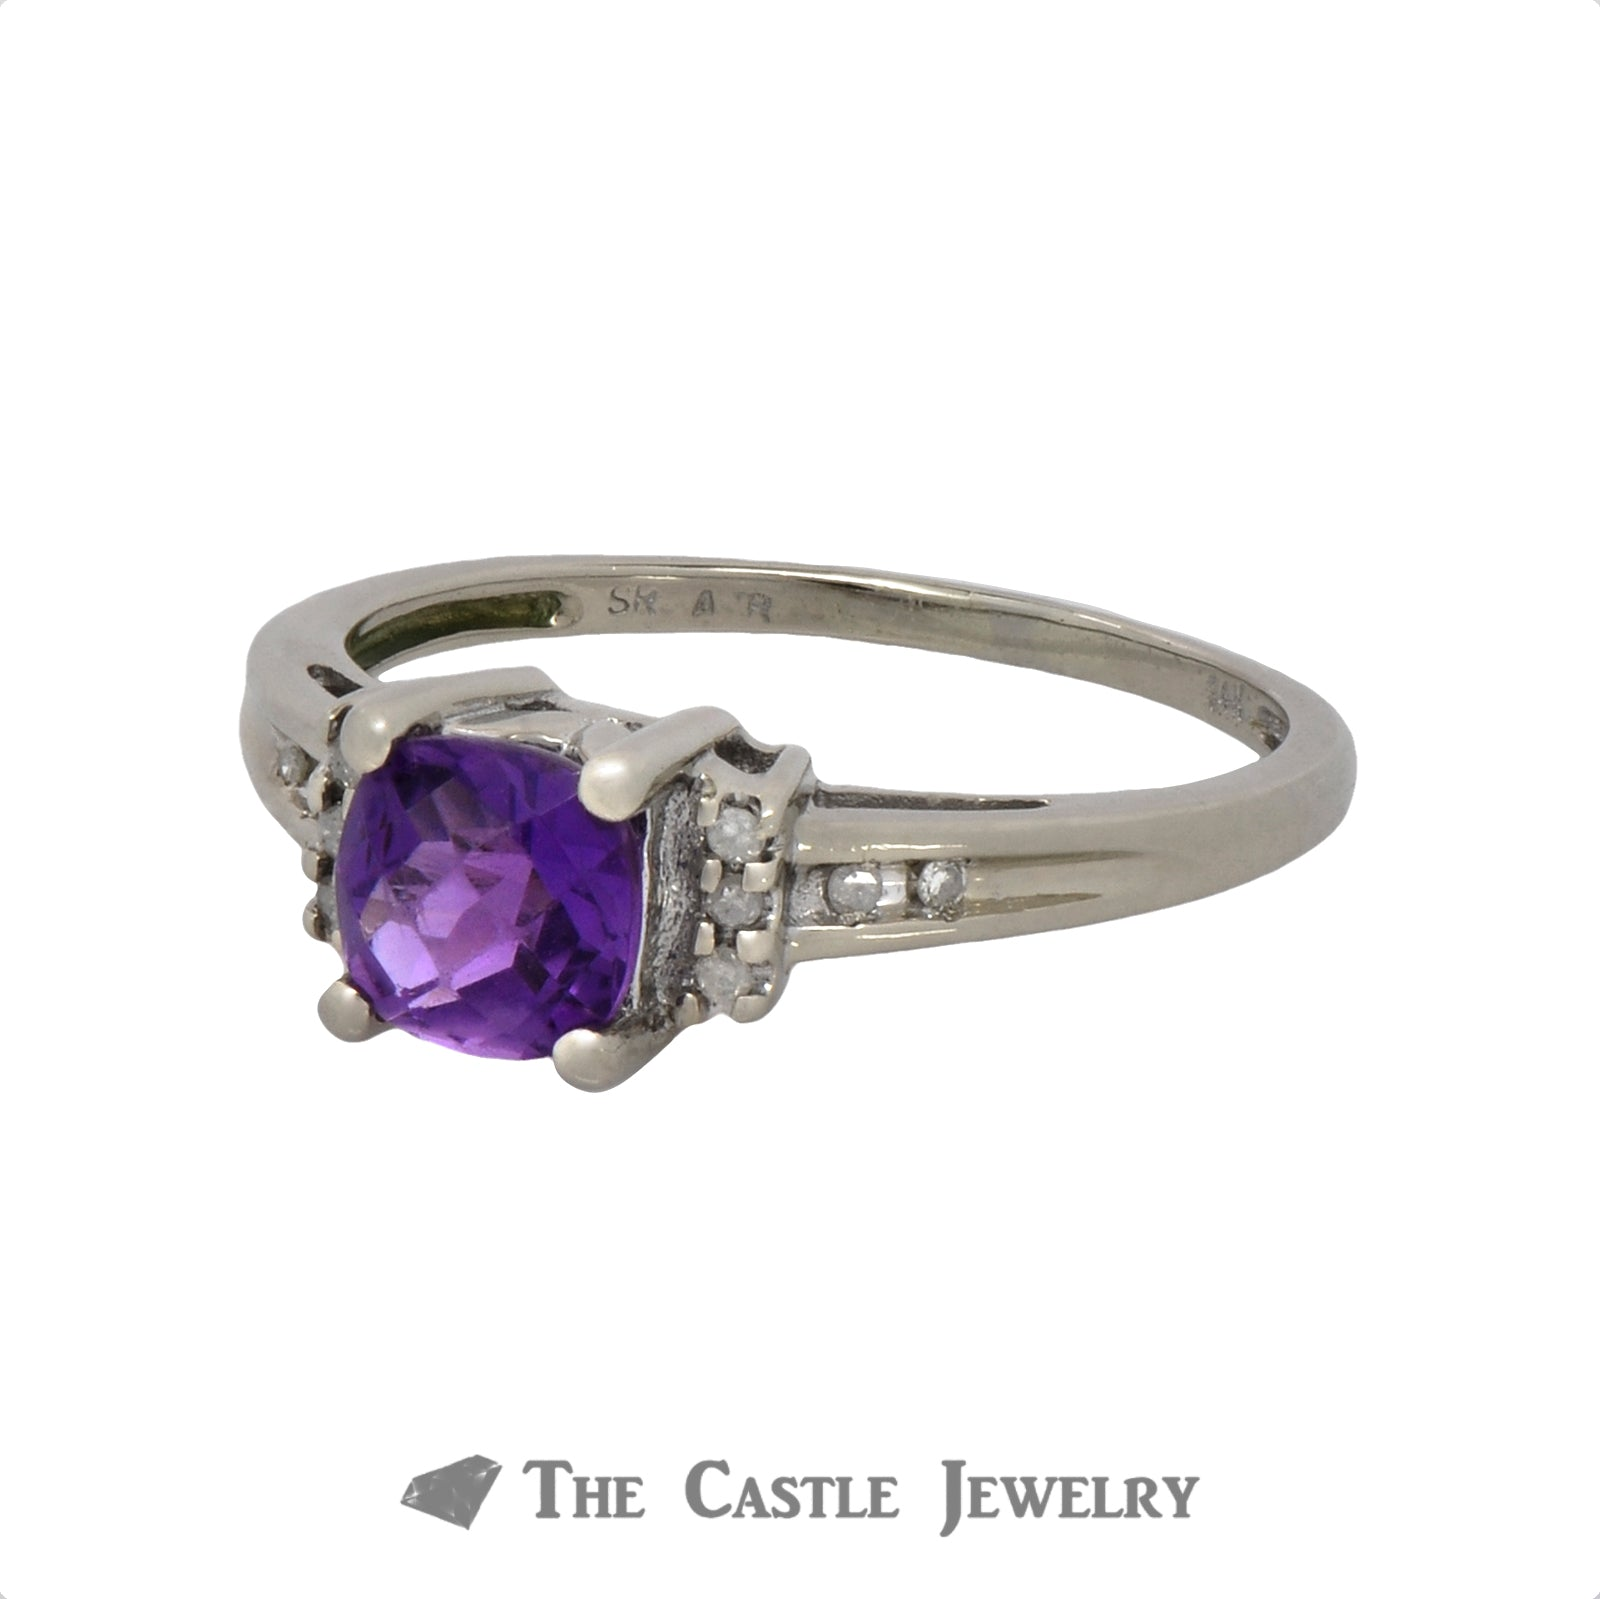 Fantasy Cut Amethyst Ring with Diamond Accents in 10K White Gold-2